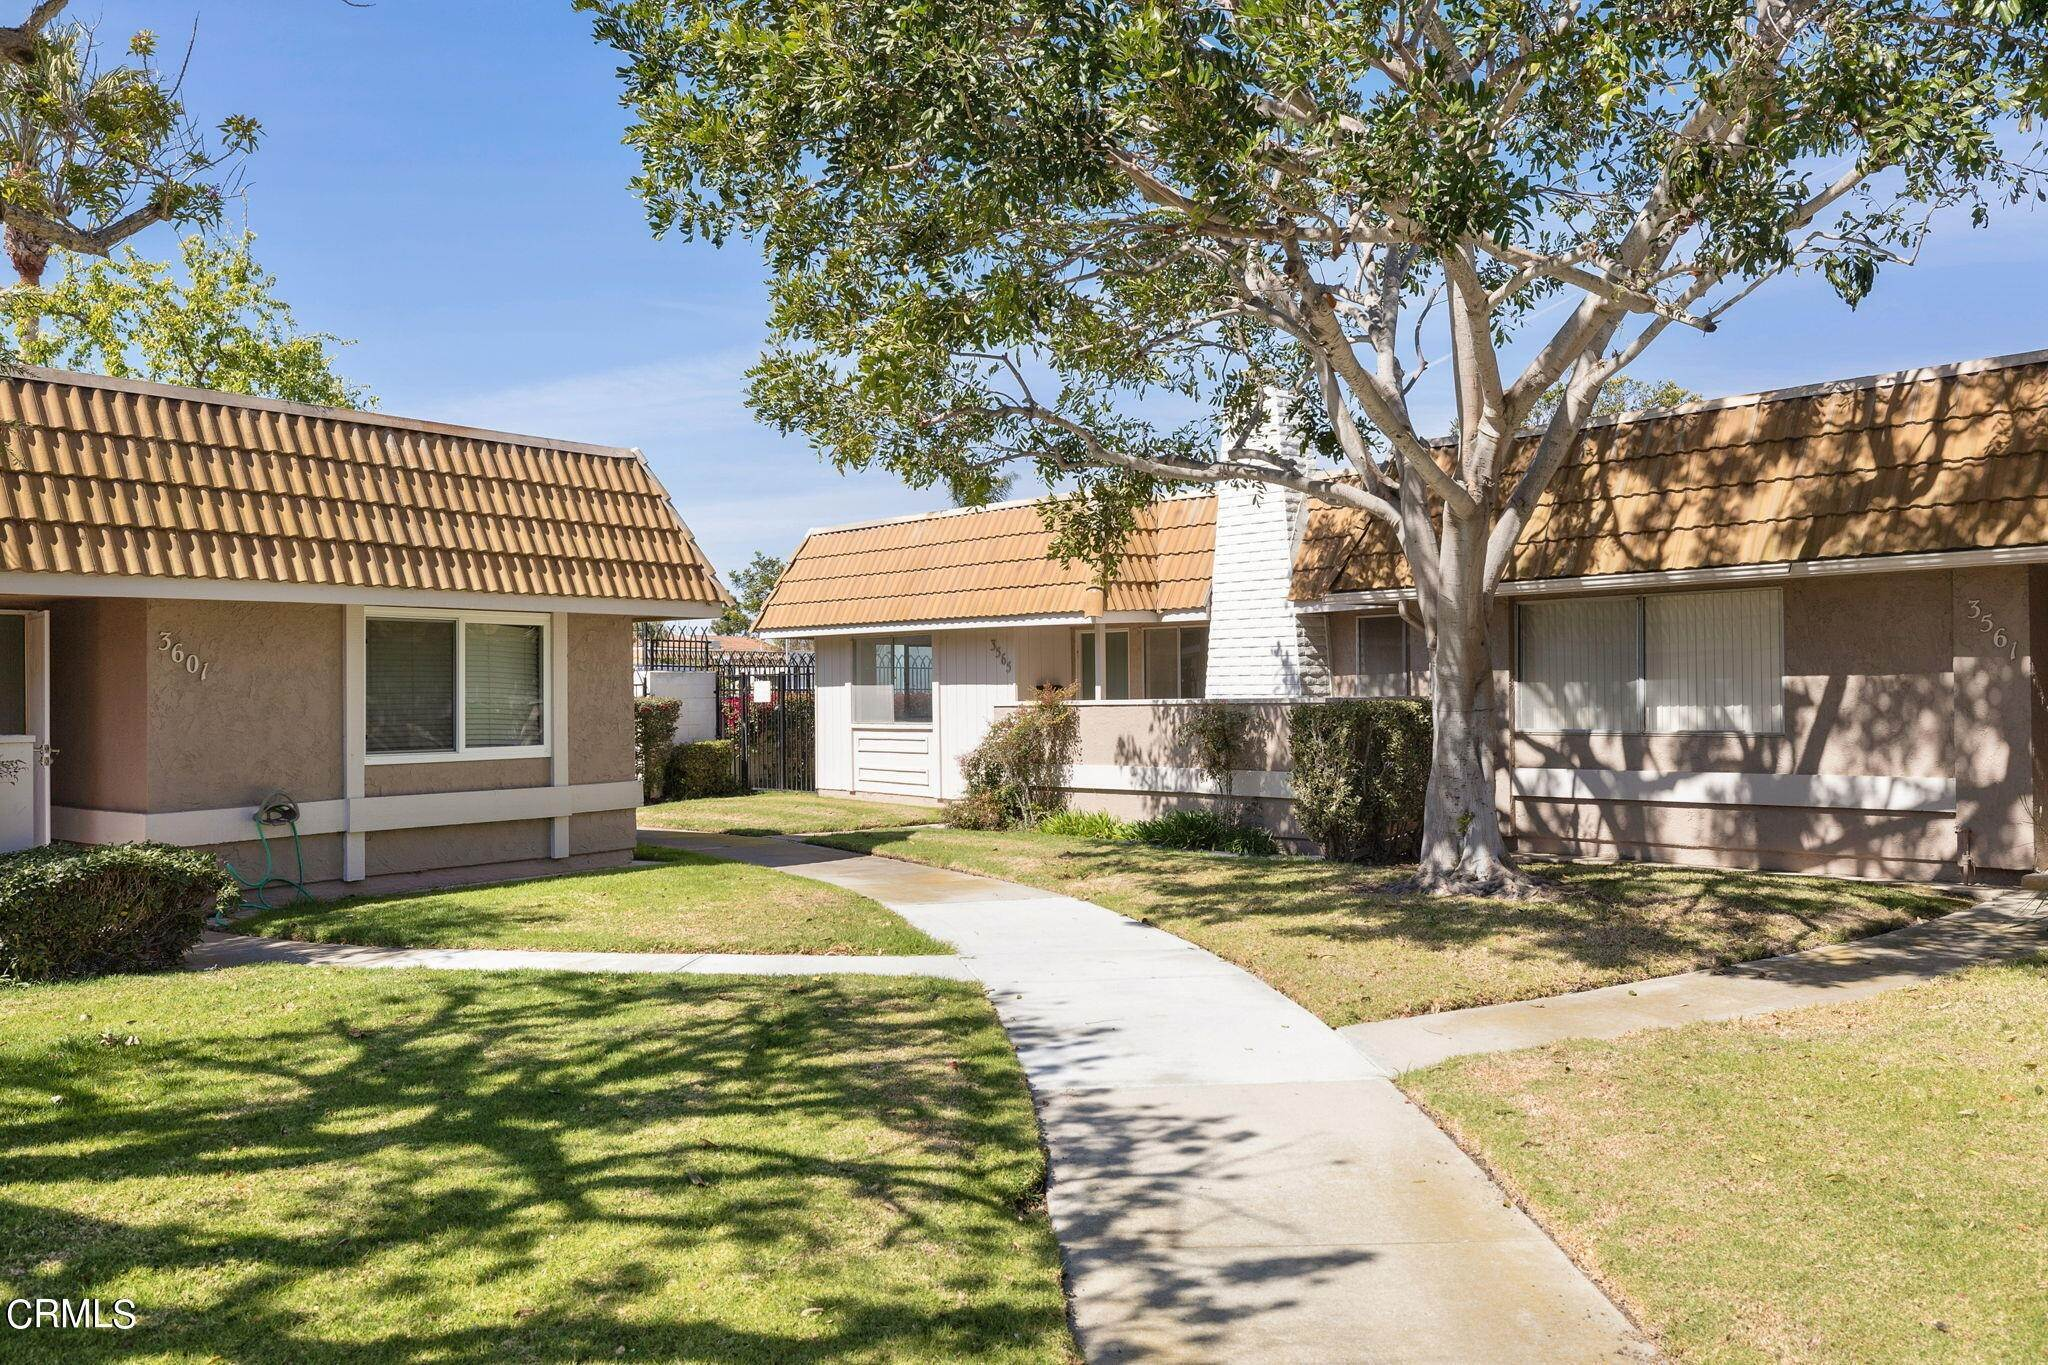 25. townhouses for Sale at 3565 Isle Way Oxnard, California 93035 United States